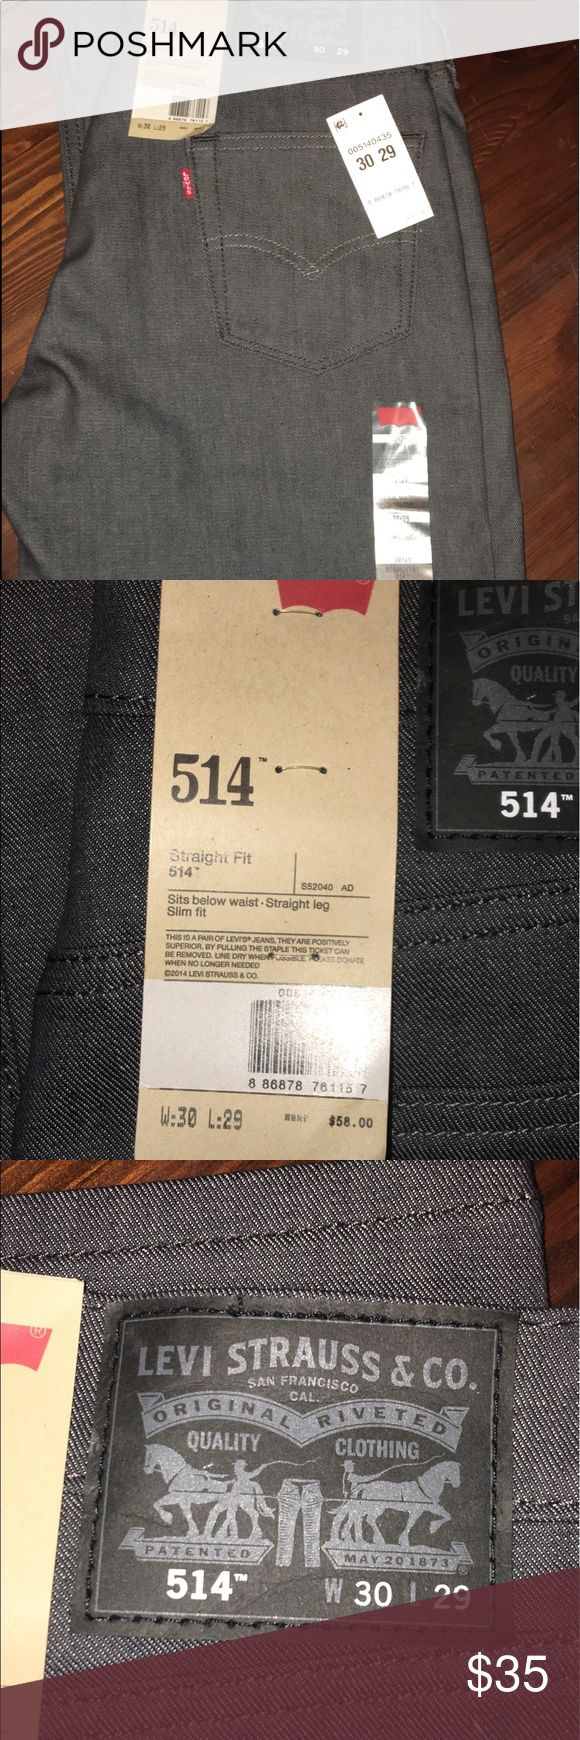 "Levi Strauss 514 Straight Fit grey jeans 30x29 NWT Levi Strauss 514 Straight Fit ""rigid grey"" jeans 30x29 Levi's Jeans Straight"